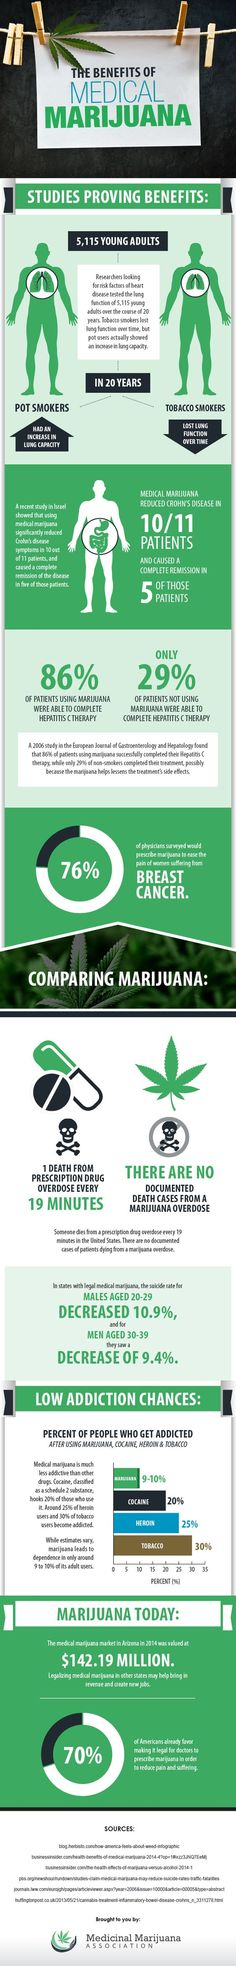 The benefits of medical marijuana #marijuana #medicalmarijuana http://budposters.com/